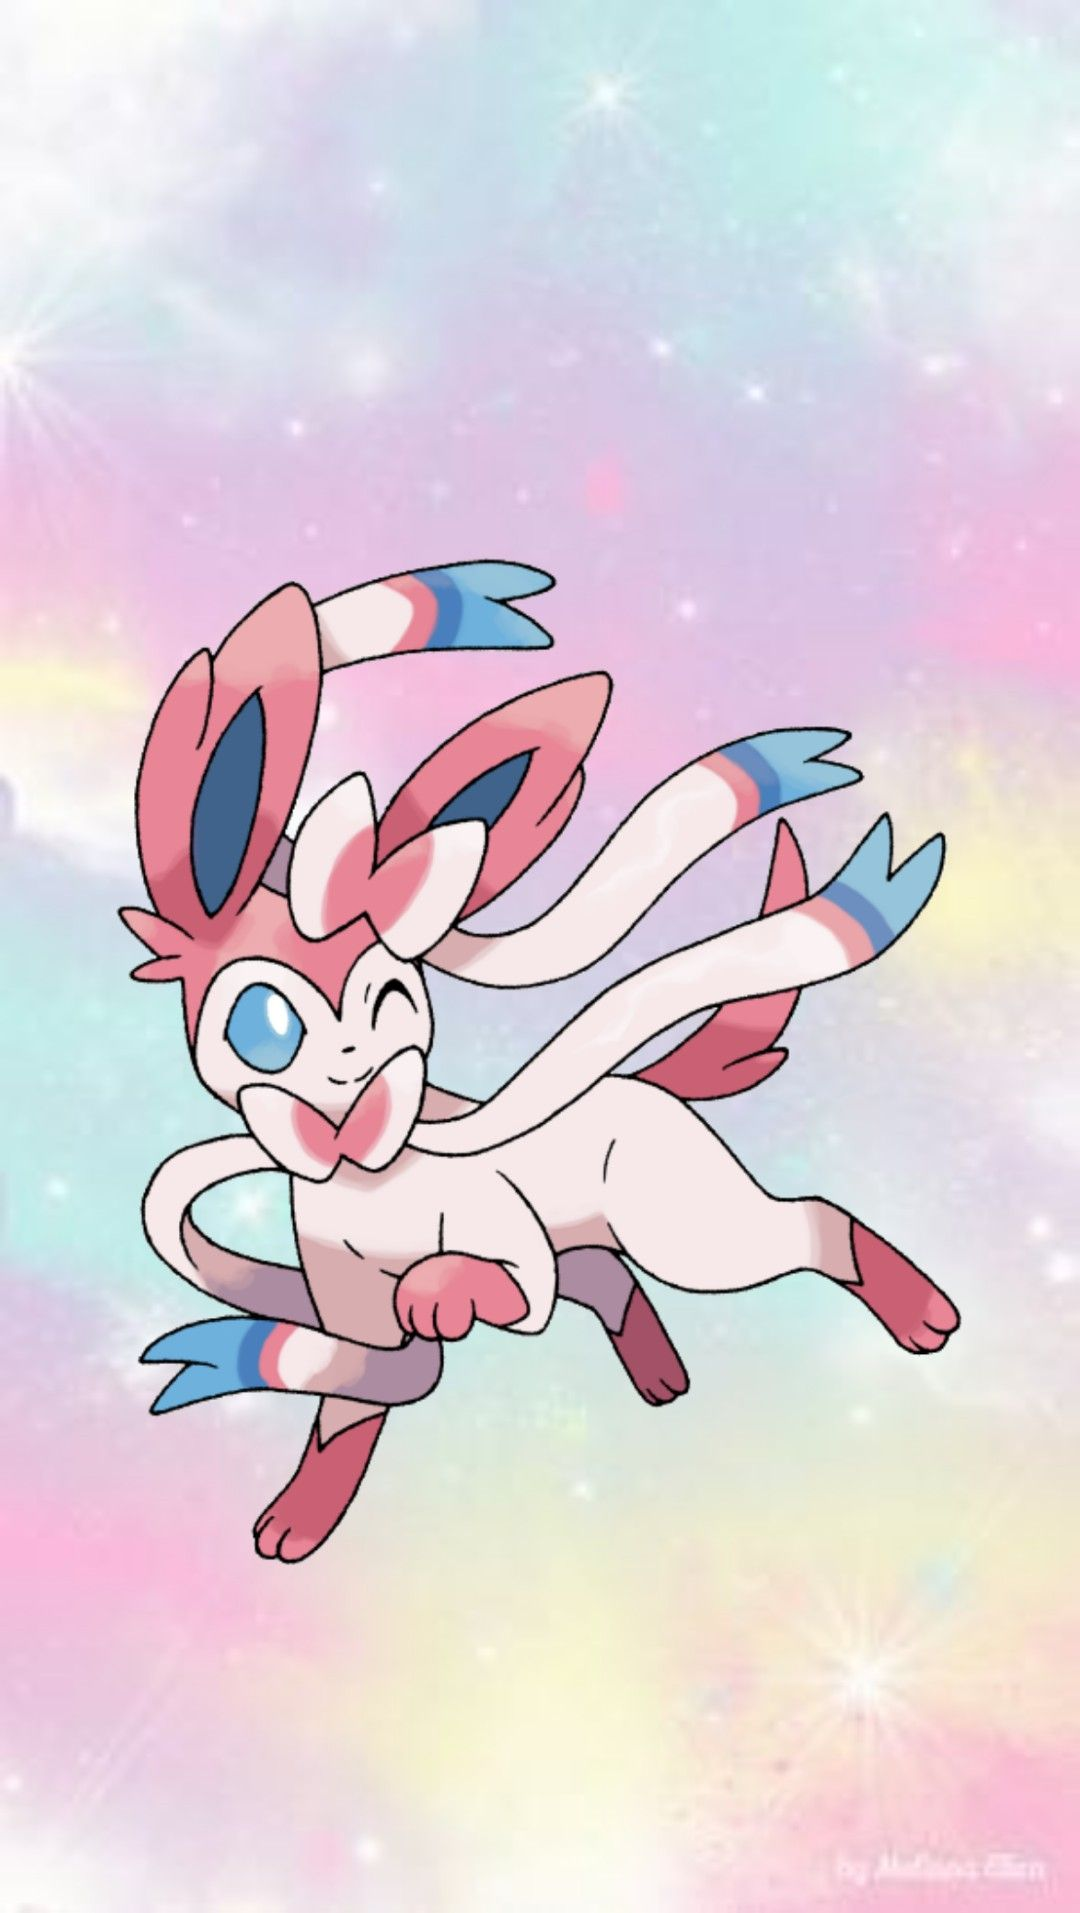 sylveon wallpaper 21 | Dibujos kawaii, Dibujos, Fotos de ...